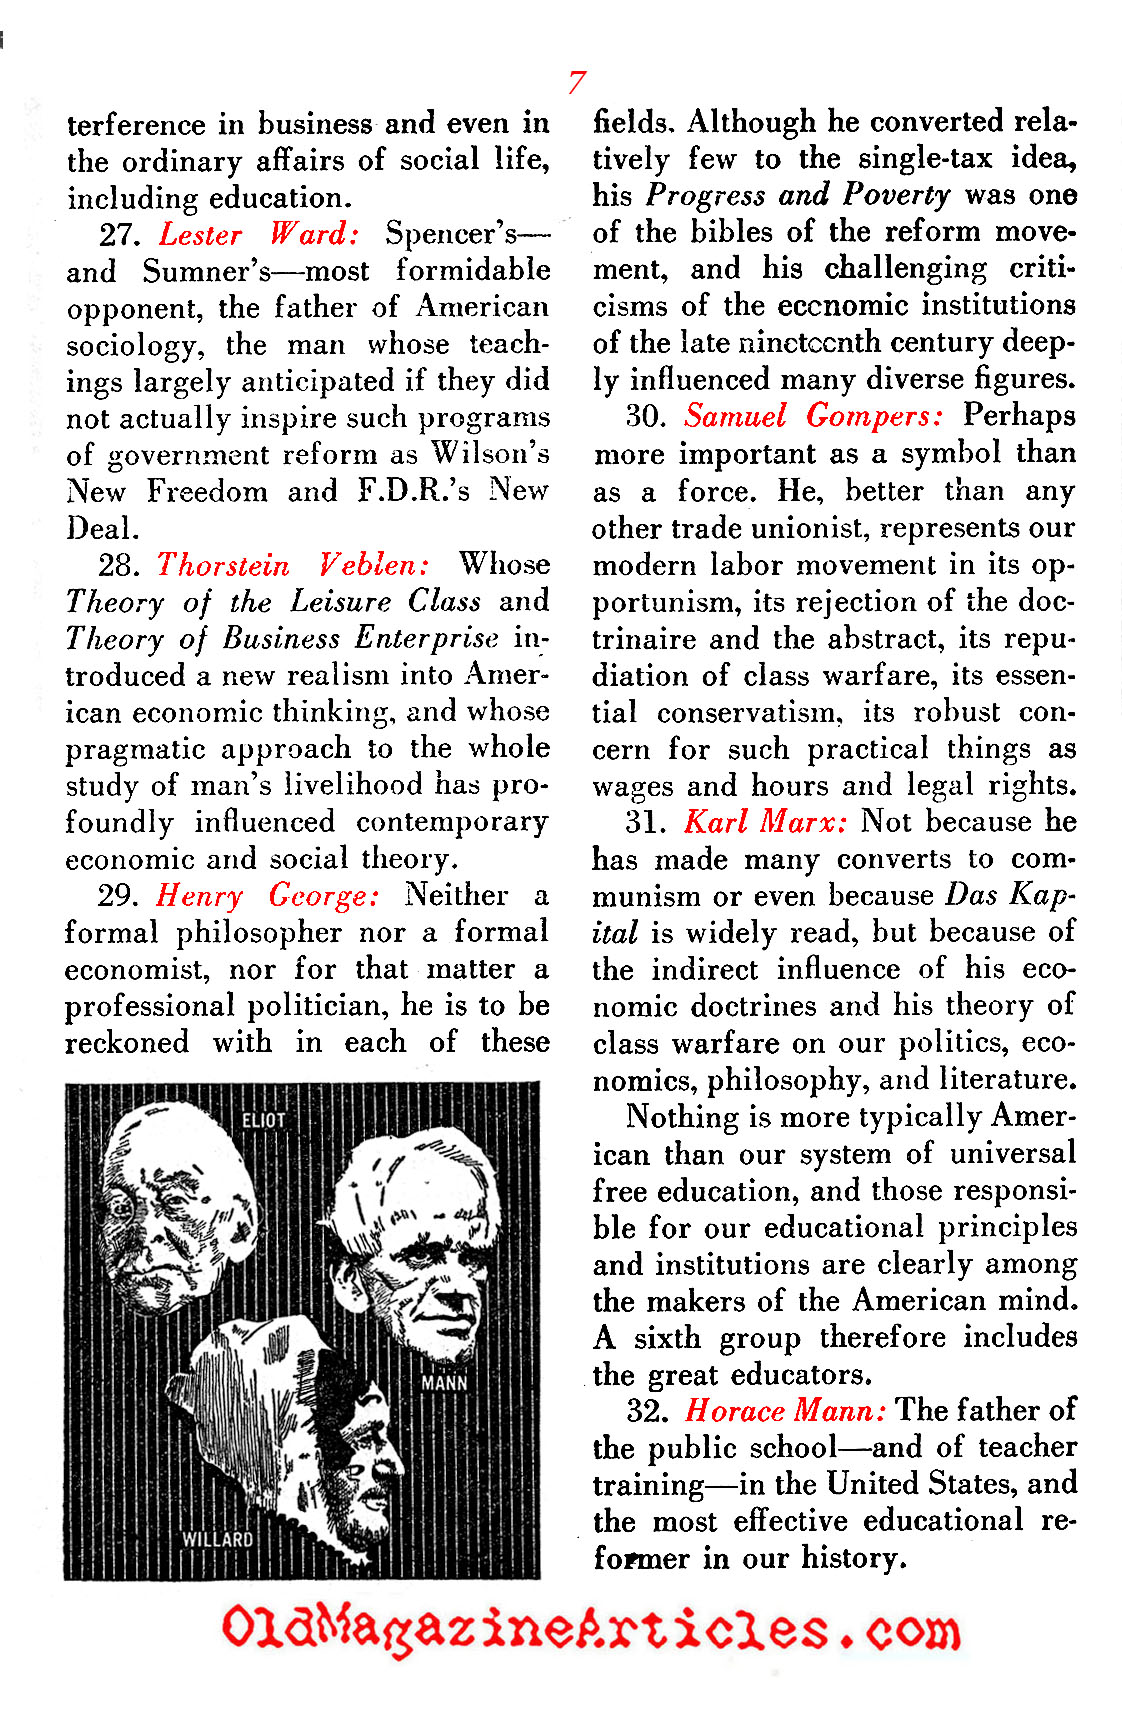 They Molded the American Mind ('48 Magazine, 1948)